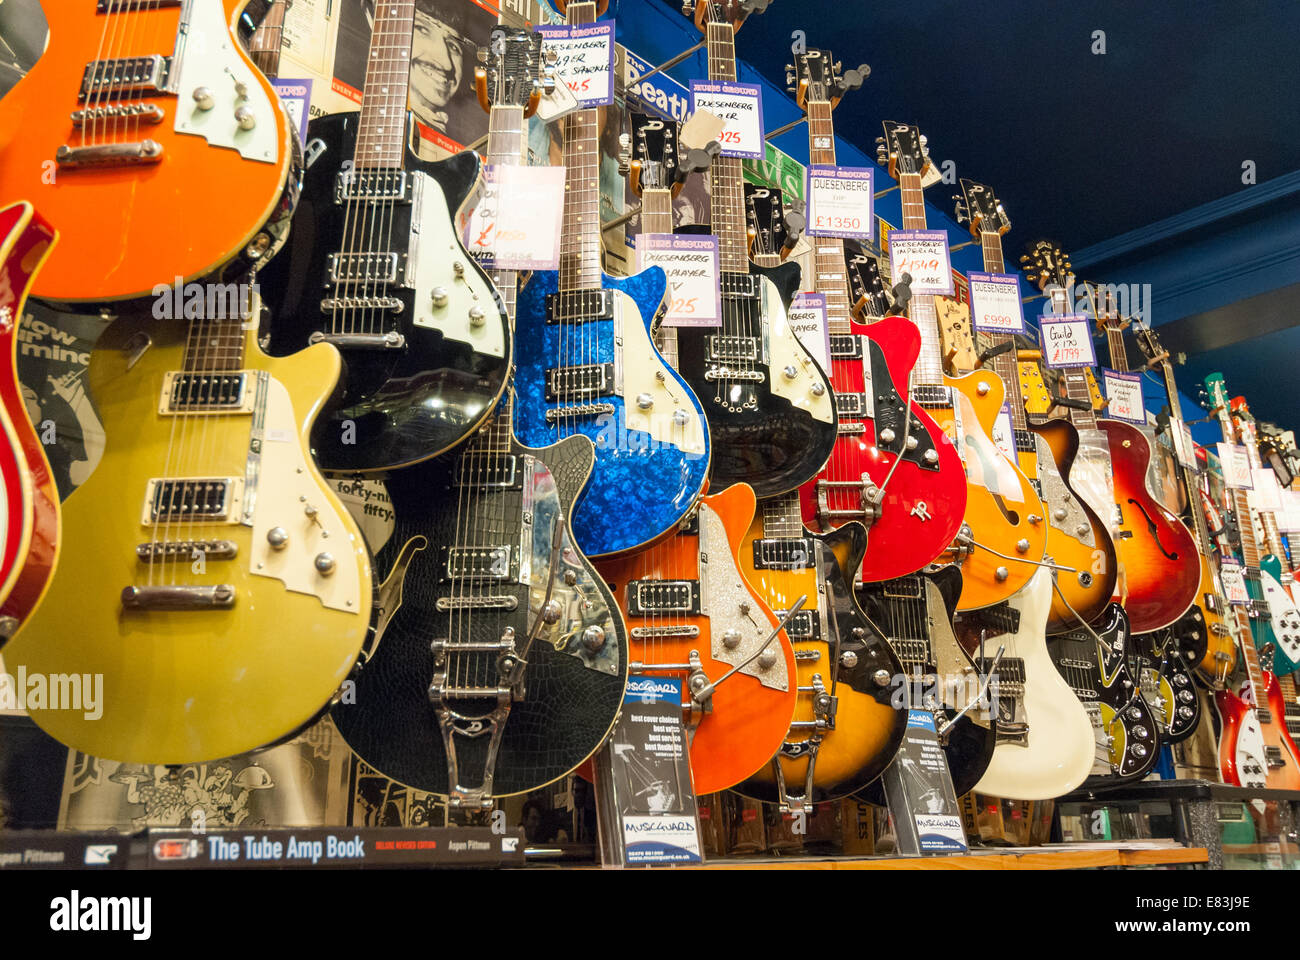 electric guitars in andy 39 s guitar shop in denmark street london stock photo 73838954 alamy. Black Bedroom Furniture Sets. Home Design Ideas